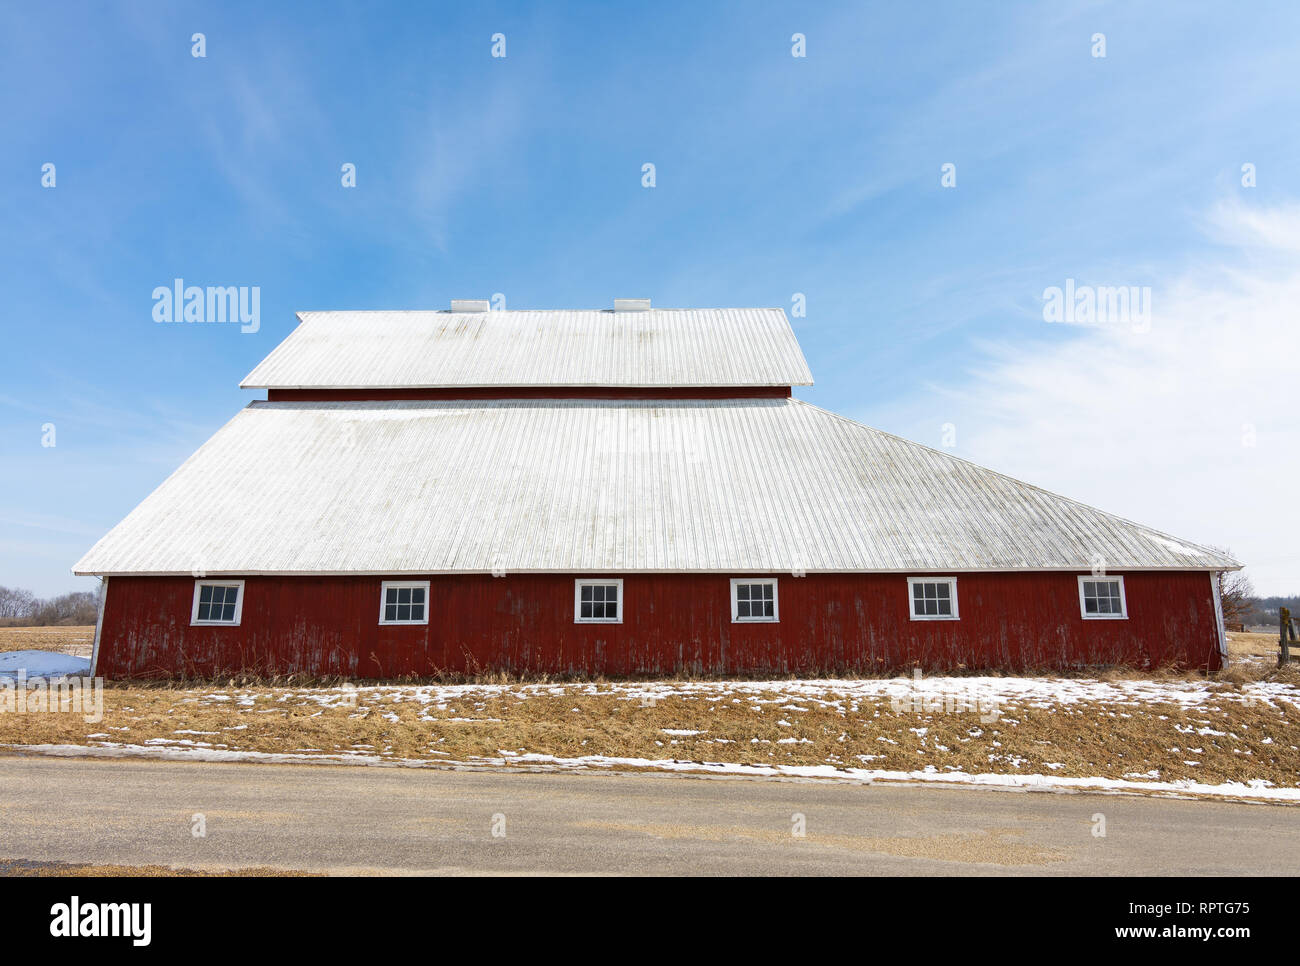 Old red barn in the rural midwest bureau county illinois usa